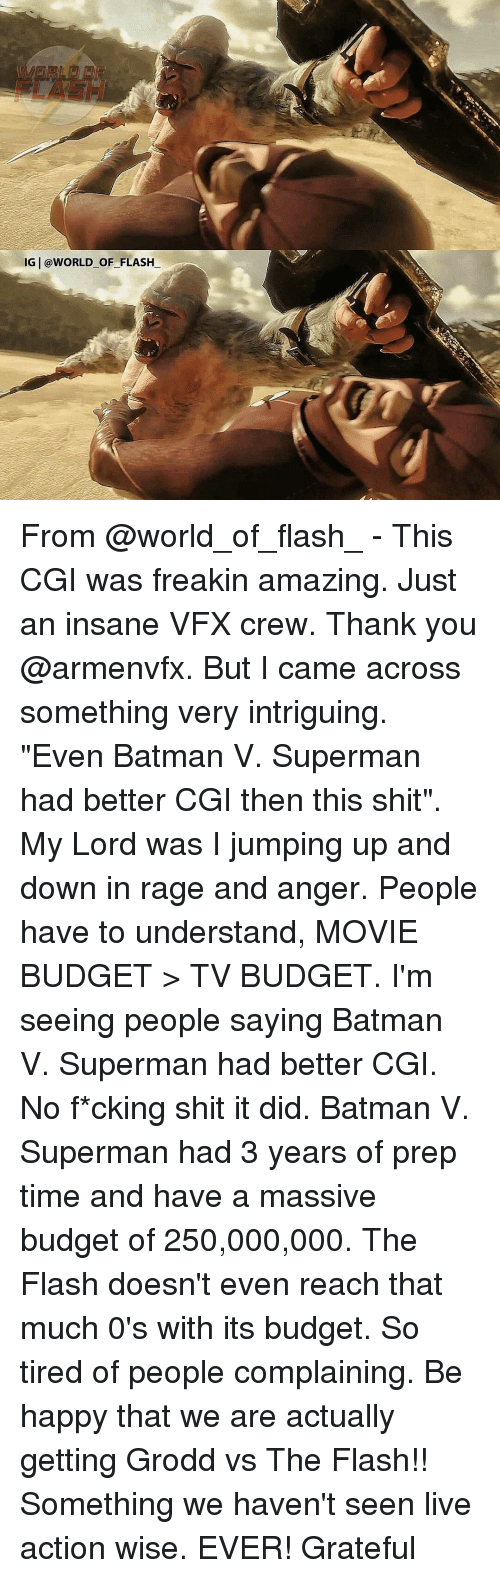 "Batman, Memes, and Superman: IG @WORLD OF FLASH From @world_of_flash_ - This CGI was freakin amazing. Just an insane VFX crew. Thank you @armenvfx. But I came across something very intriguing. ""Even Batman V. Superman had better CGI then this shit"". My Lord was I jumping up and down in rage and anger. People have to understand, MOVIE BUDGET > TV BUDGET. I'm seeing people saying Batman V. Superman had better CGI. No f*cking shit it did. Batman V. Superman had 3 years of prep time and have a massive budget of 250,000,000. The Flash doesn't even reach that much 0's with its budget. So tired of people complaining. Be happy that we are actually getting Grodd vs The Flash!! Something we haven't seen live action wise. EVER! Grateful"